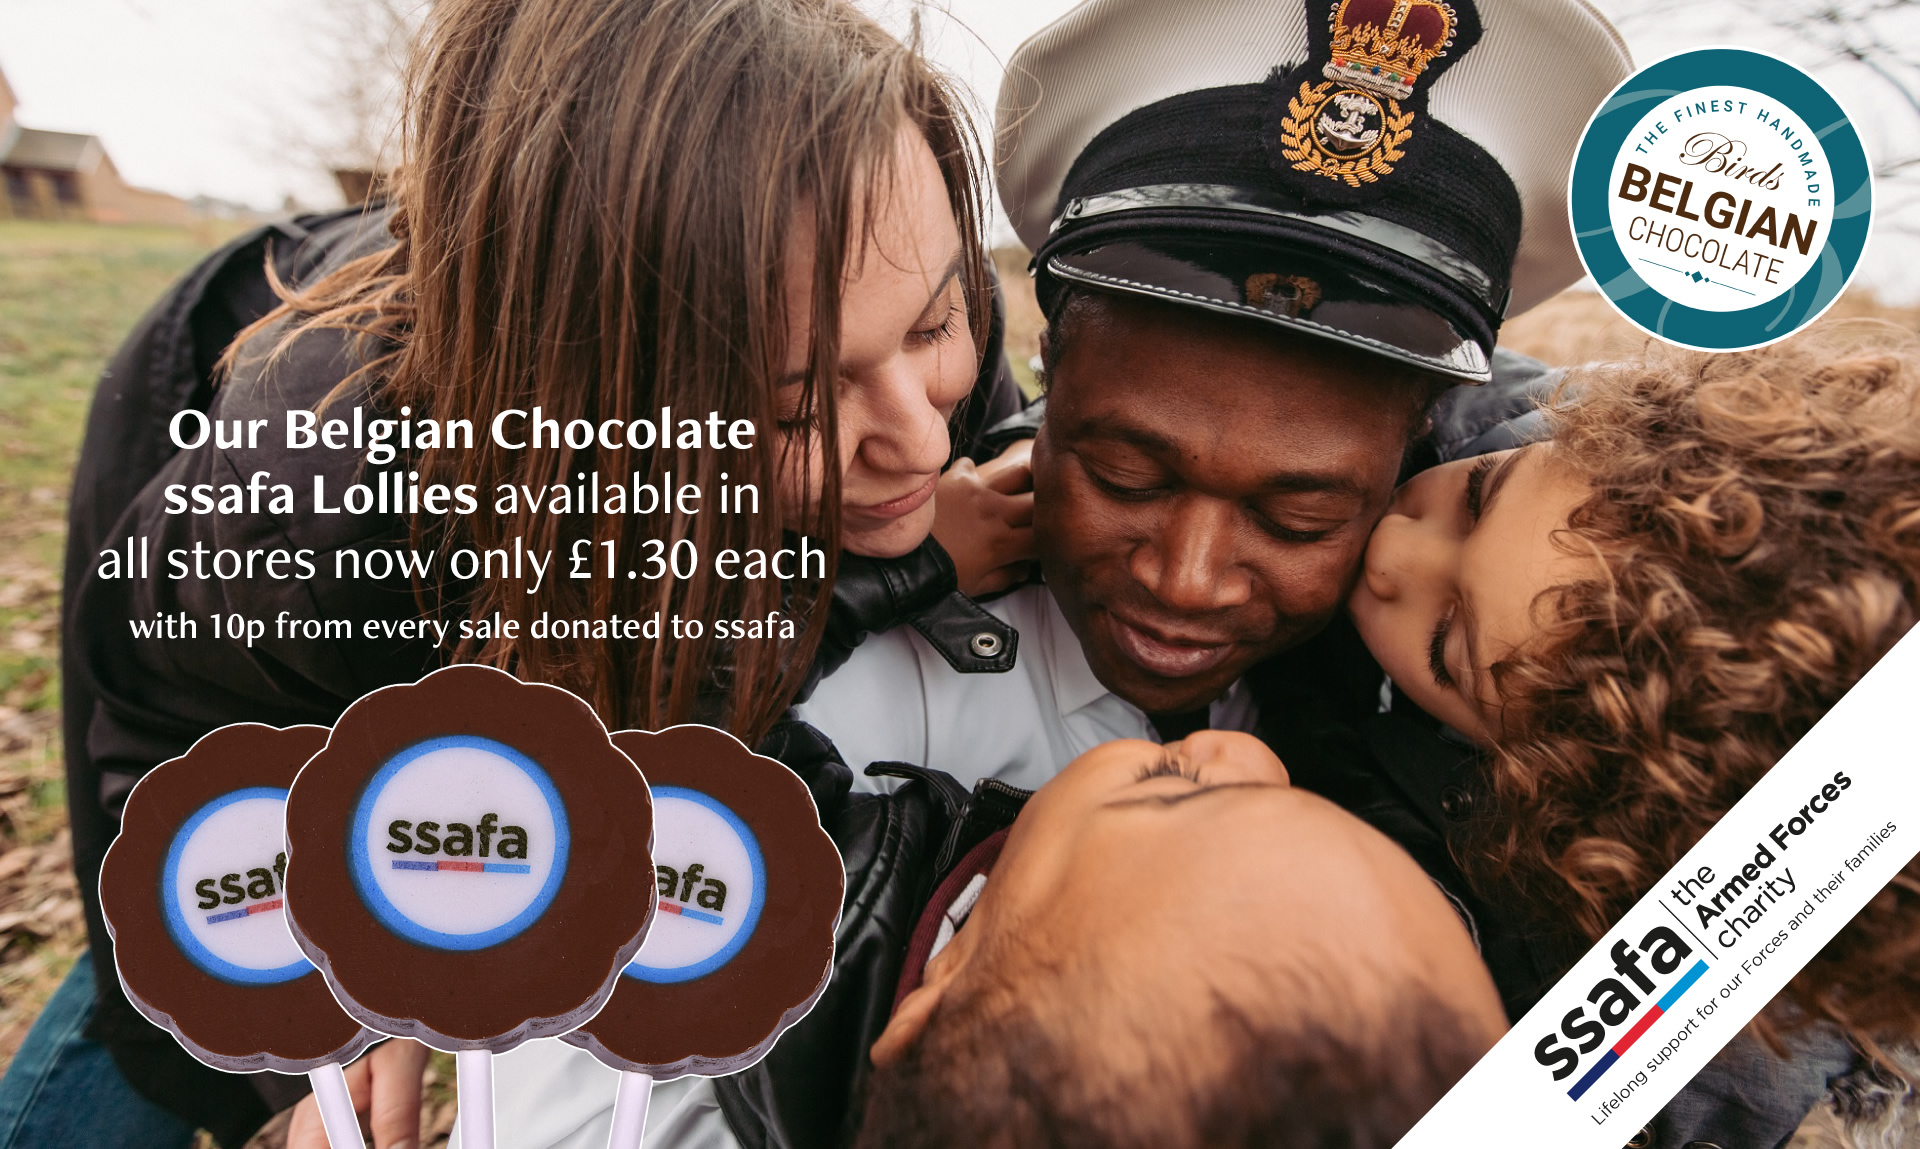 Our belgian chocolate ssafa lollies, available in all stores now only £1.30 each, with 10p from every sale donated to ssafa